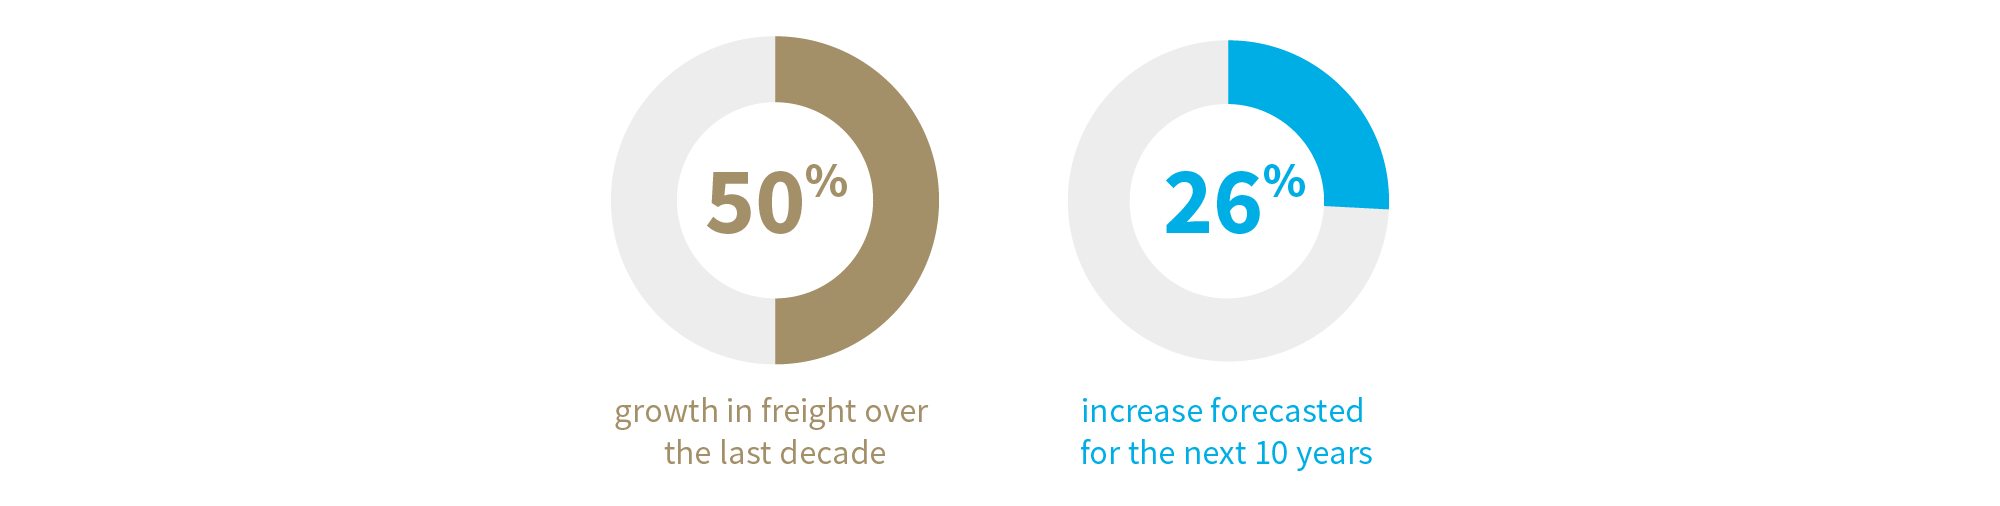 50% increase in freight 26% forecasted